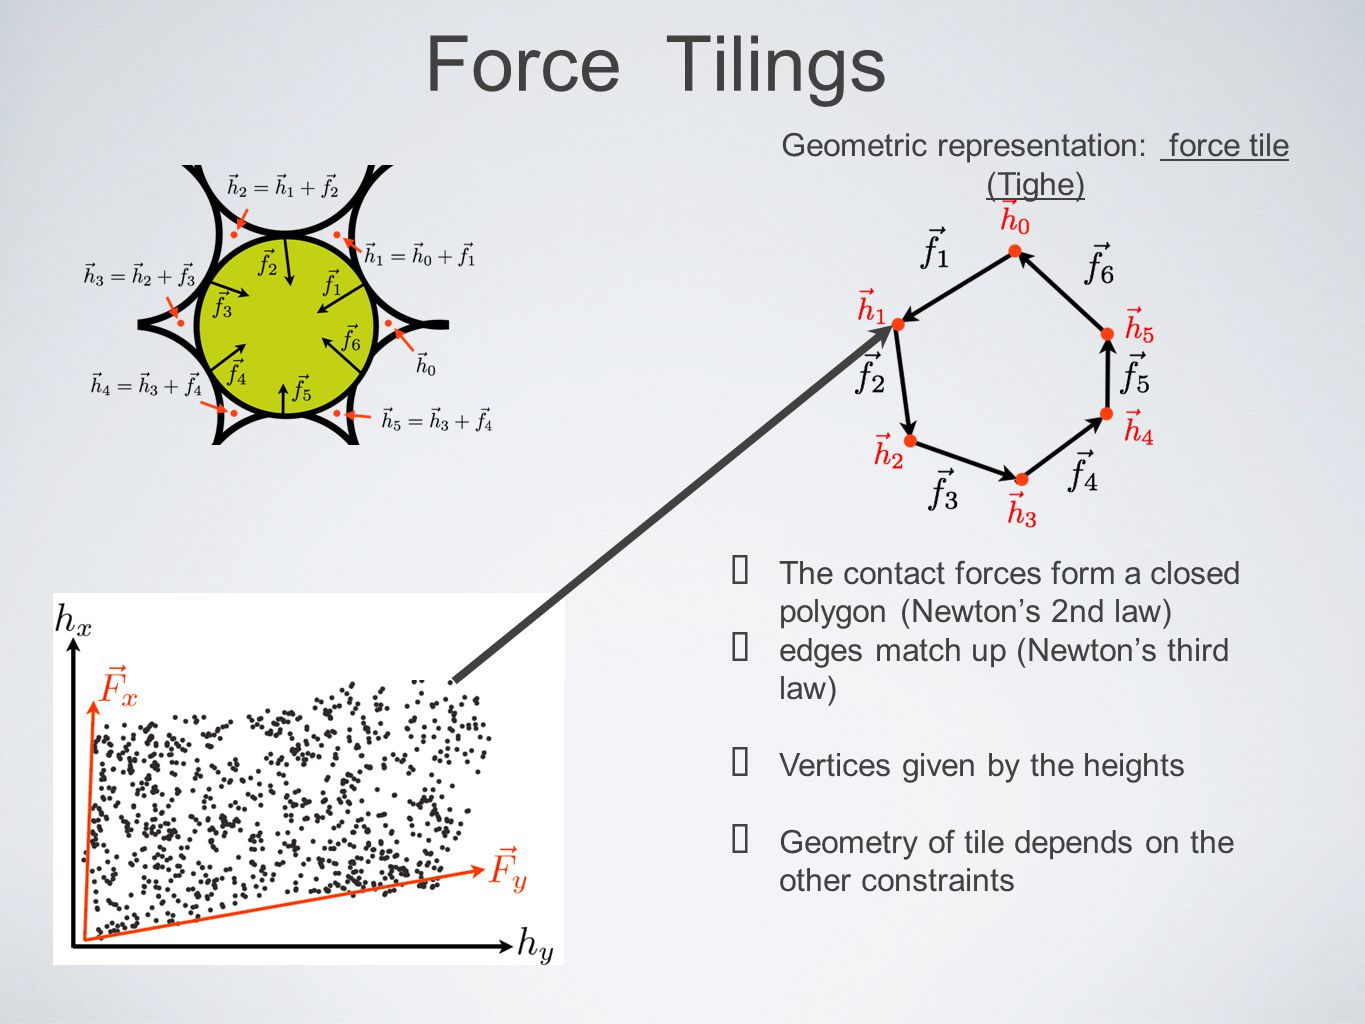 Geometric representation: force tile (Tighe)